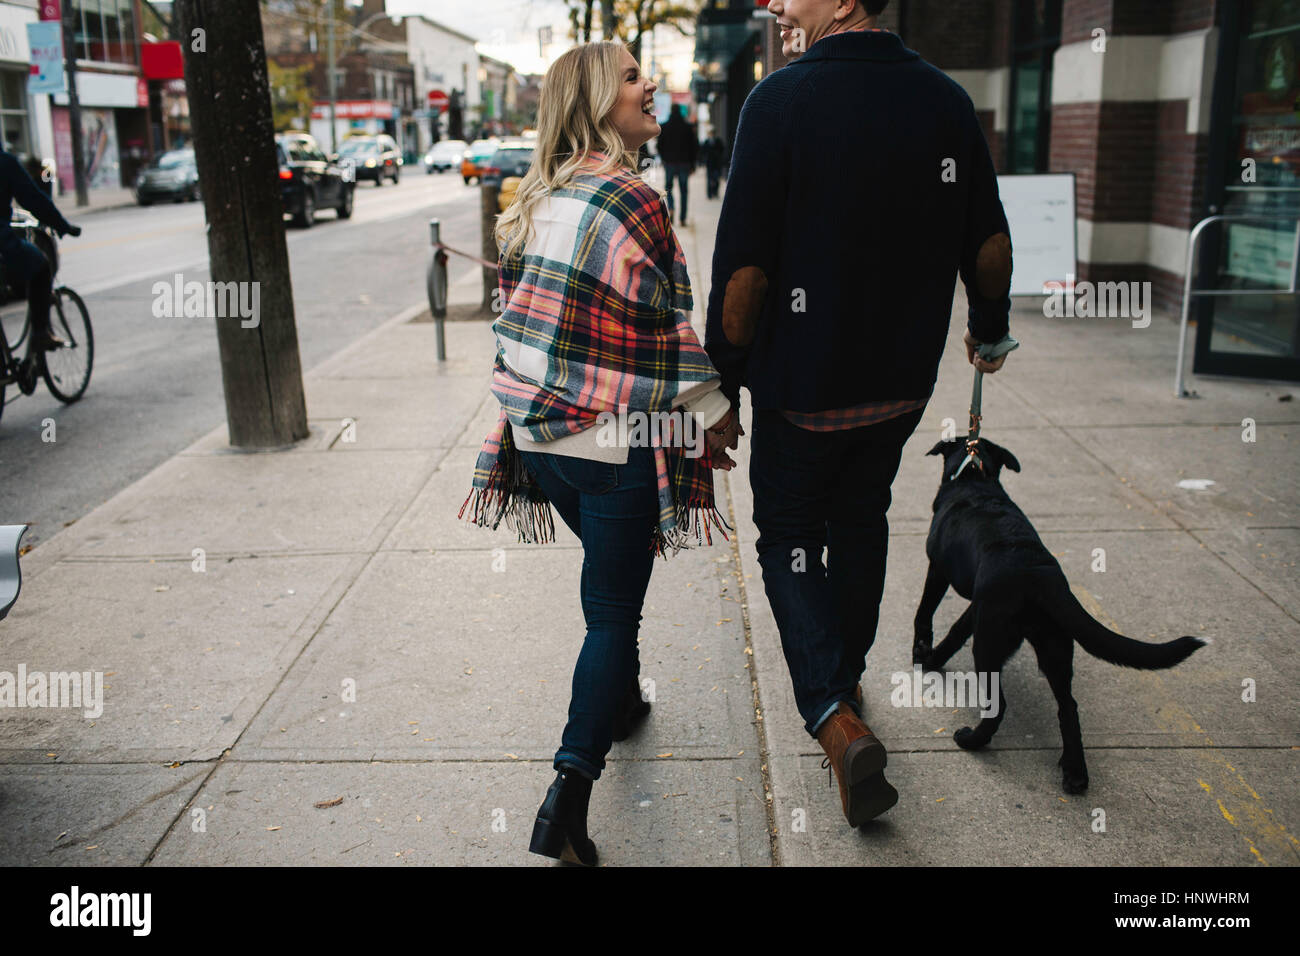 Young couple walking dog along street, rear view - Stock Image